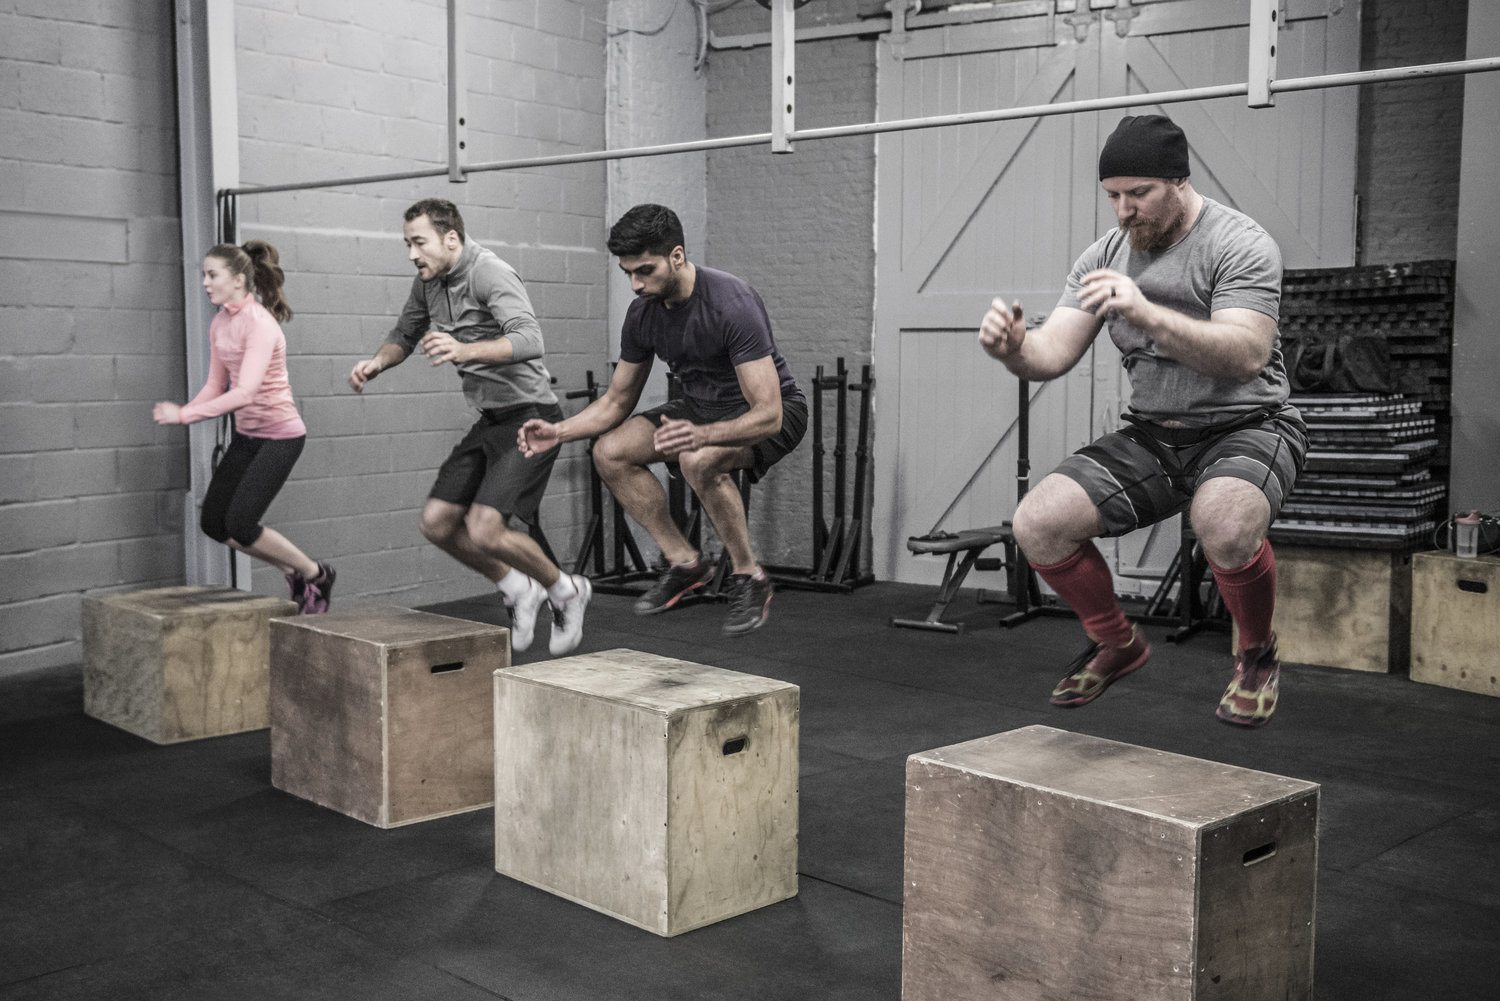 Four workout partners doing one of the best bodyweight leg exercises - the box jump